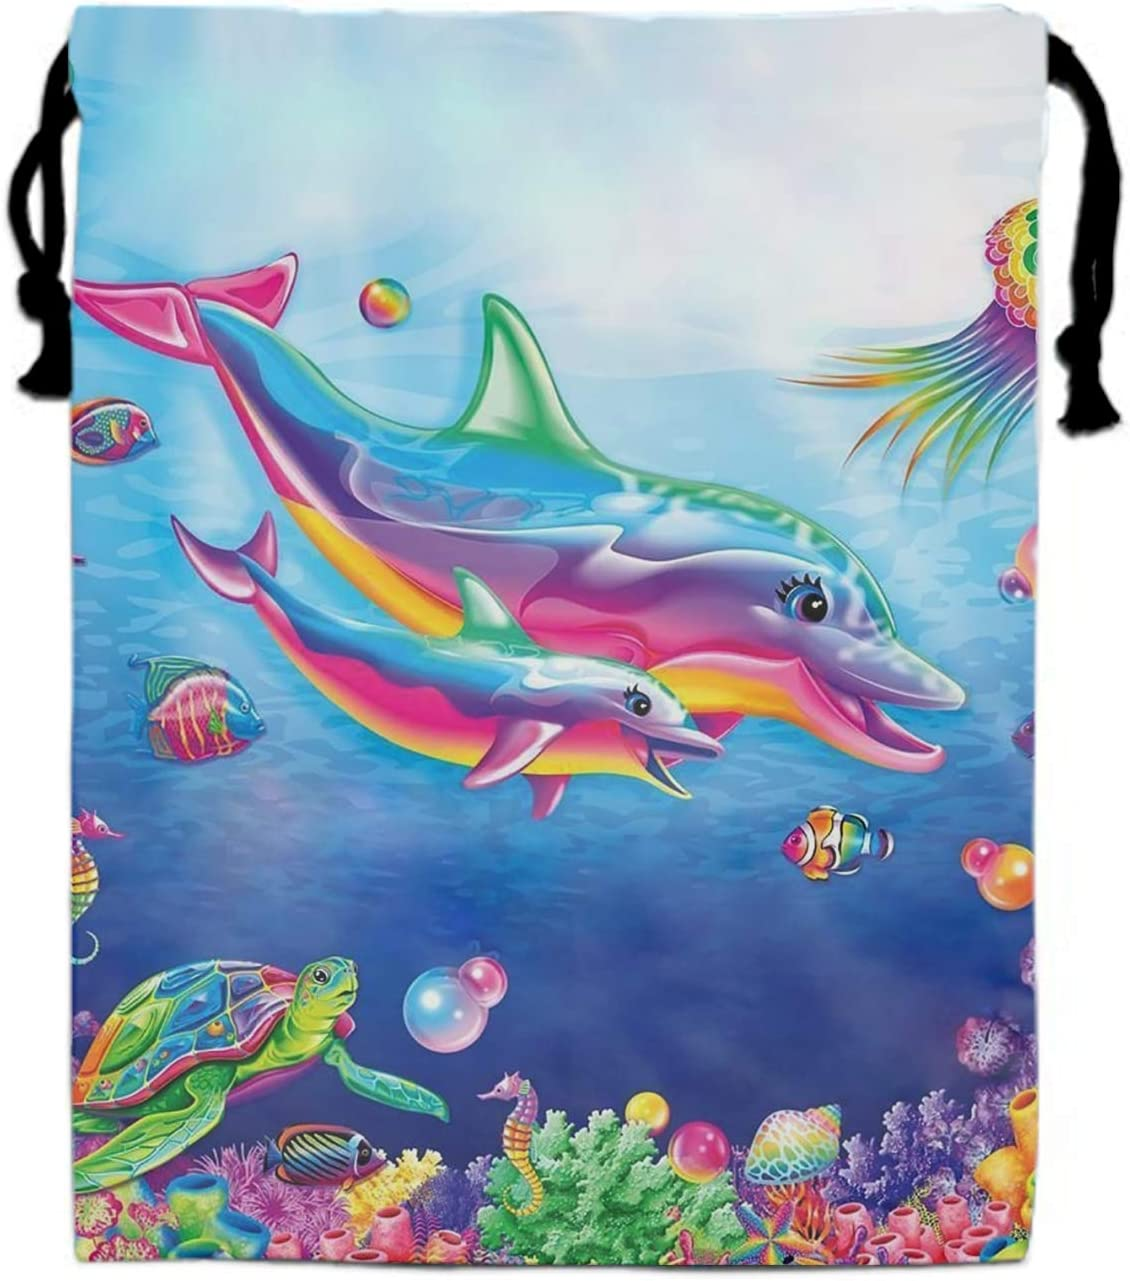 Lisa Frank Wallpaper Drawstring Bag/Shoes Underwear Makeup Laundry Storage Pouch Bags Organizers 15.75 x 11.8 inch